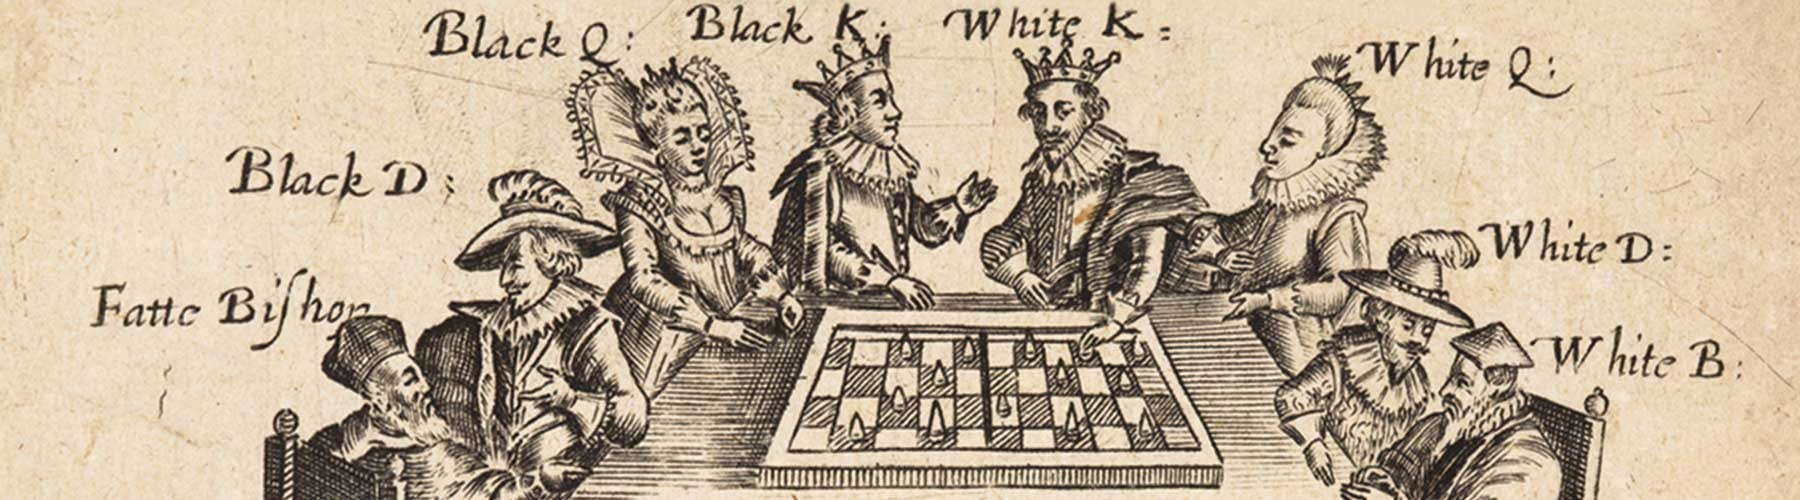 1625 illustration of people playing chess